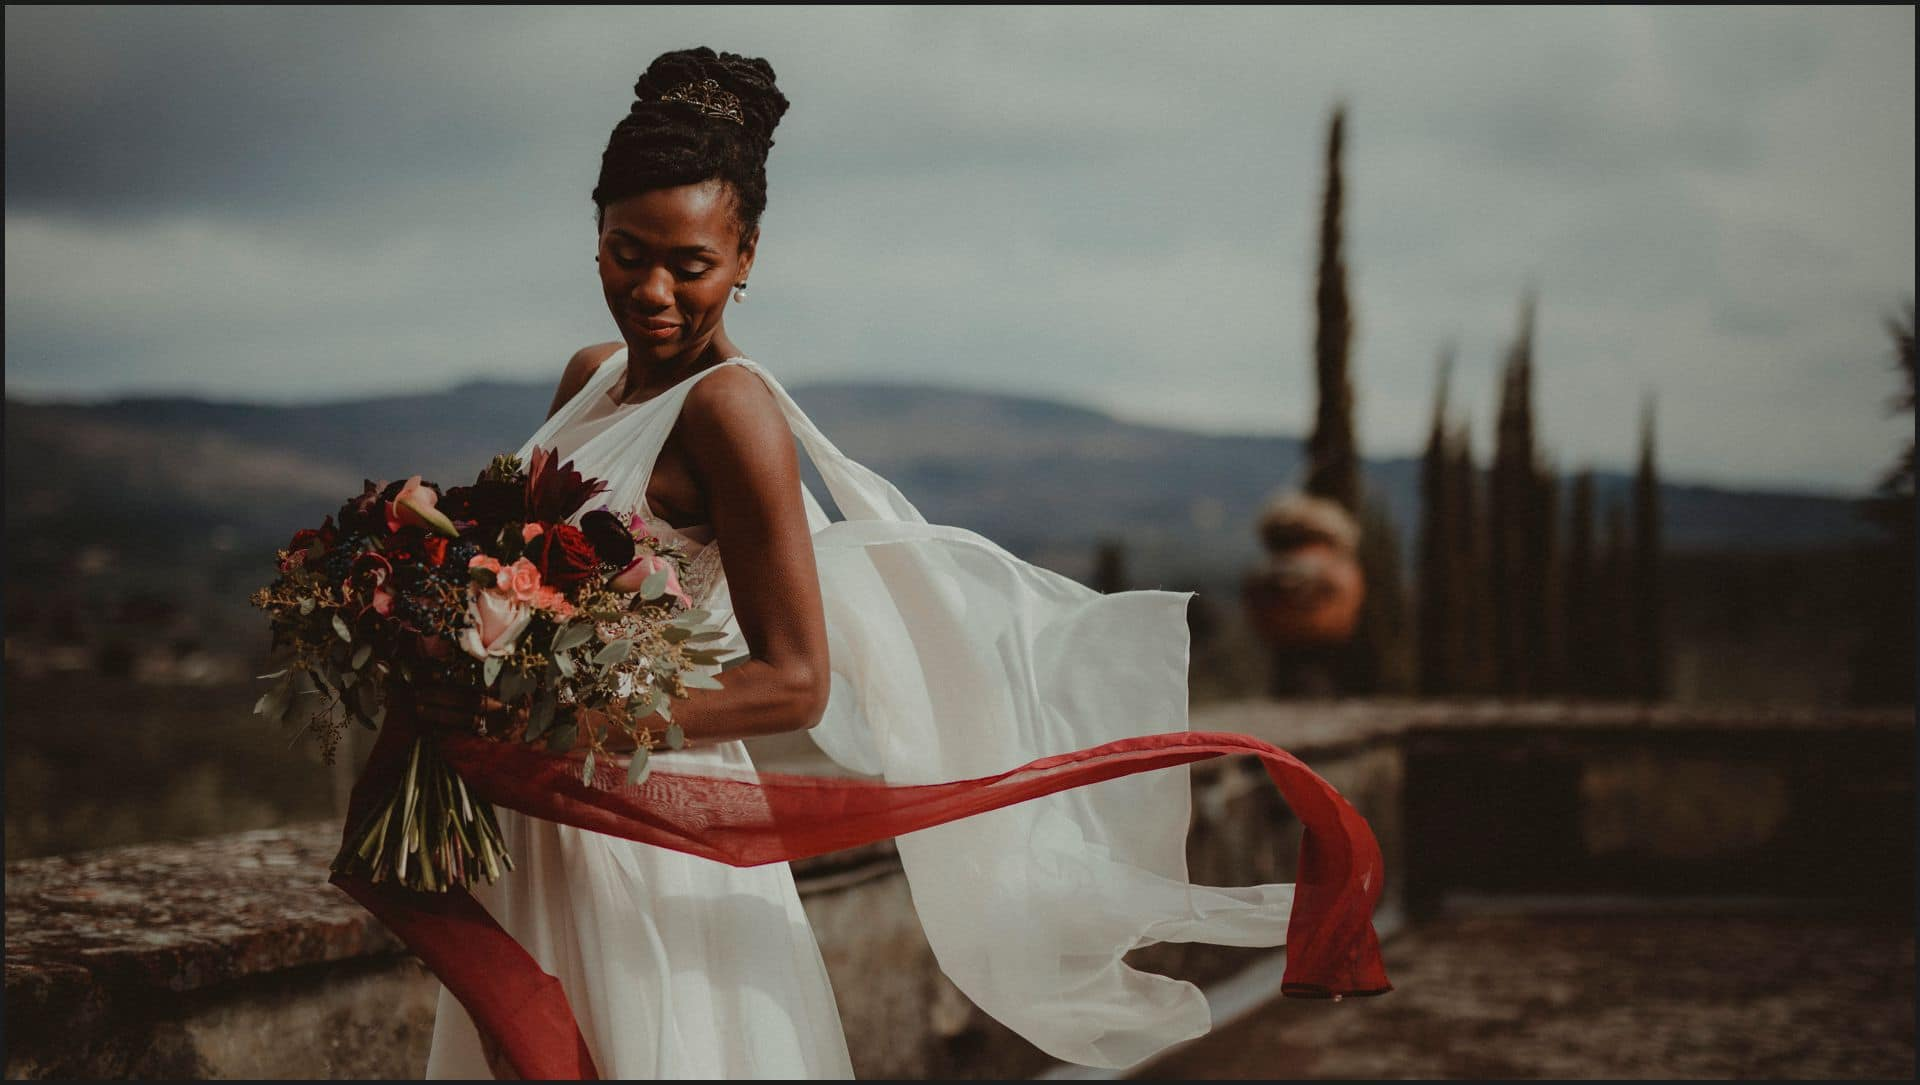 tuscany, wedding, bride